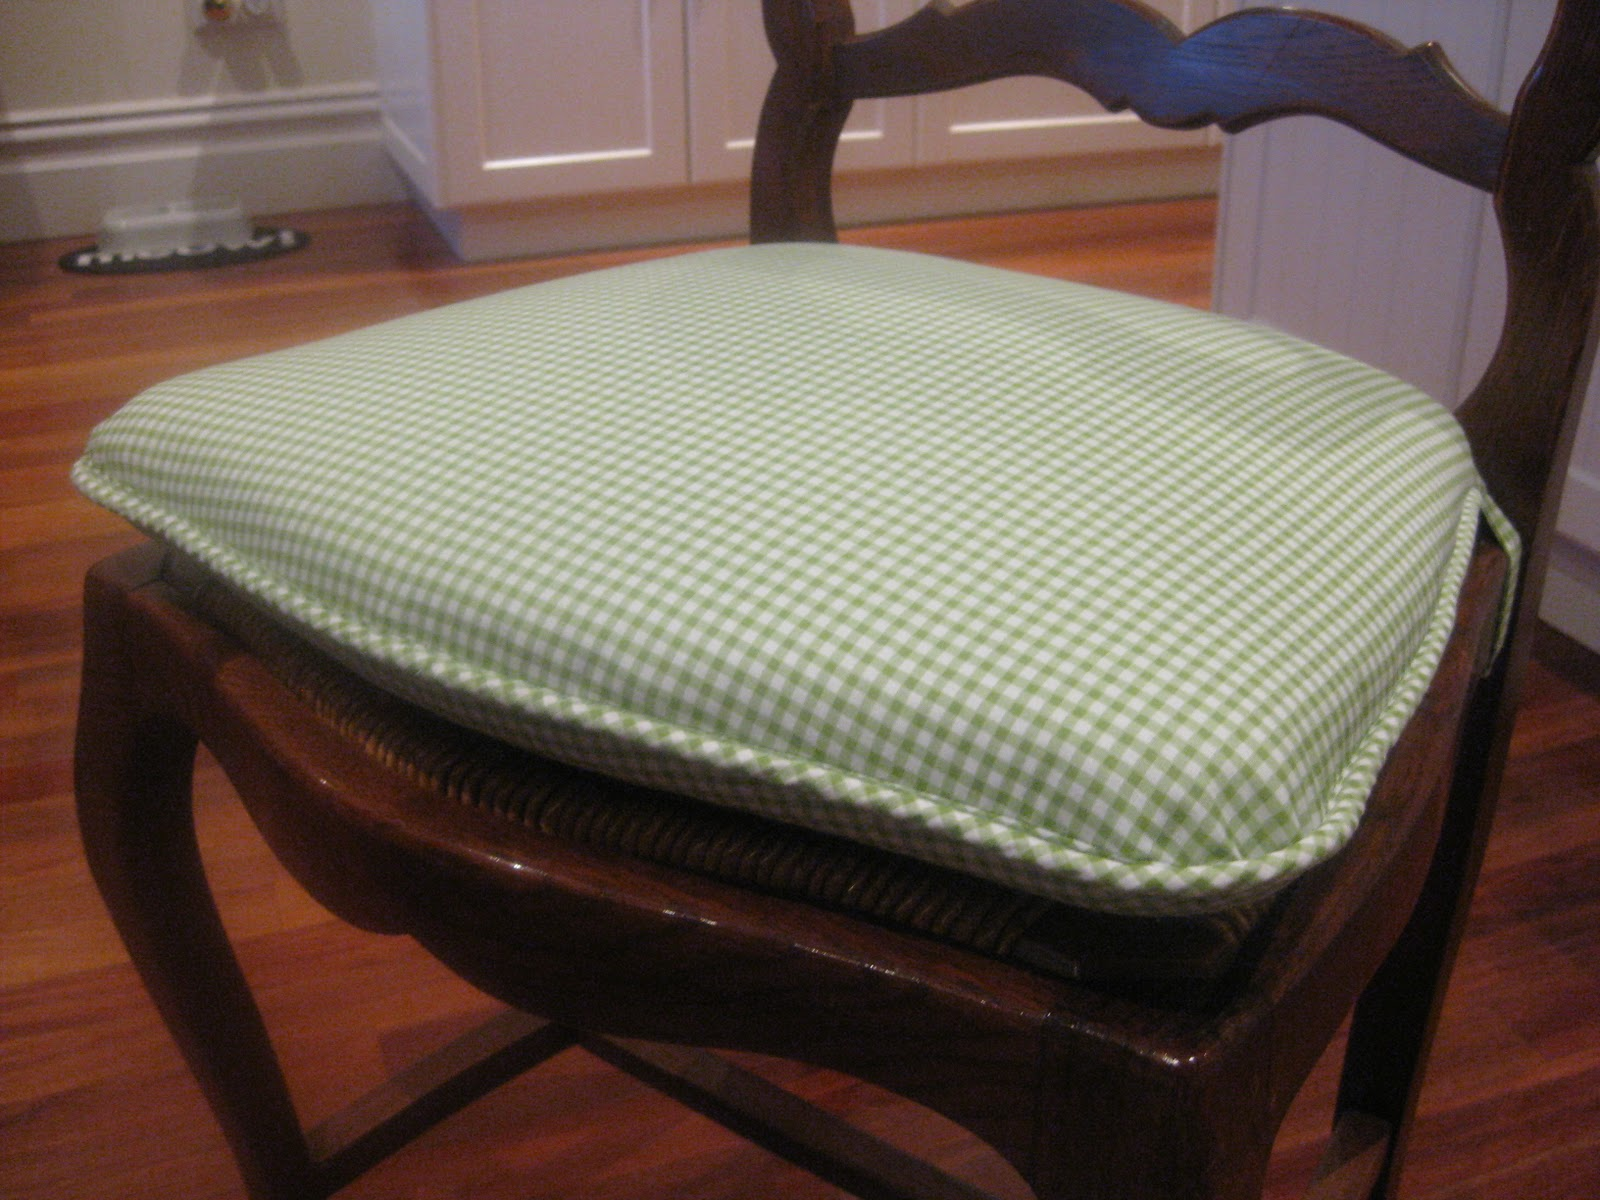 Kitchen Chair Seat Cushion Covers: Hand Sewn Home Grown: Kitchen Chair Cushions